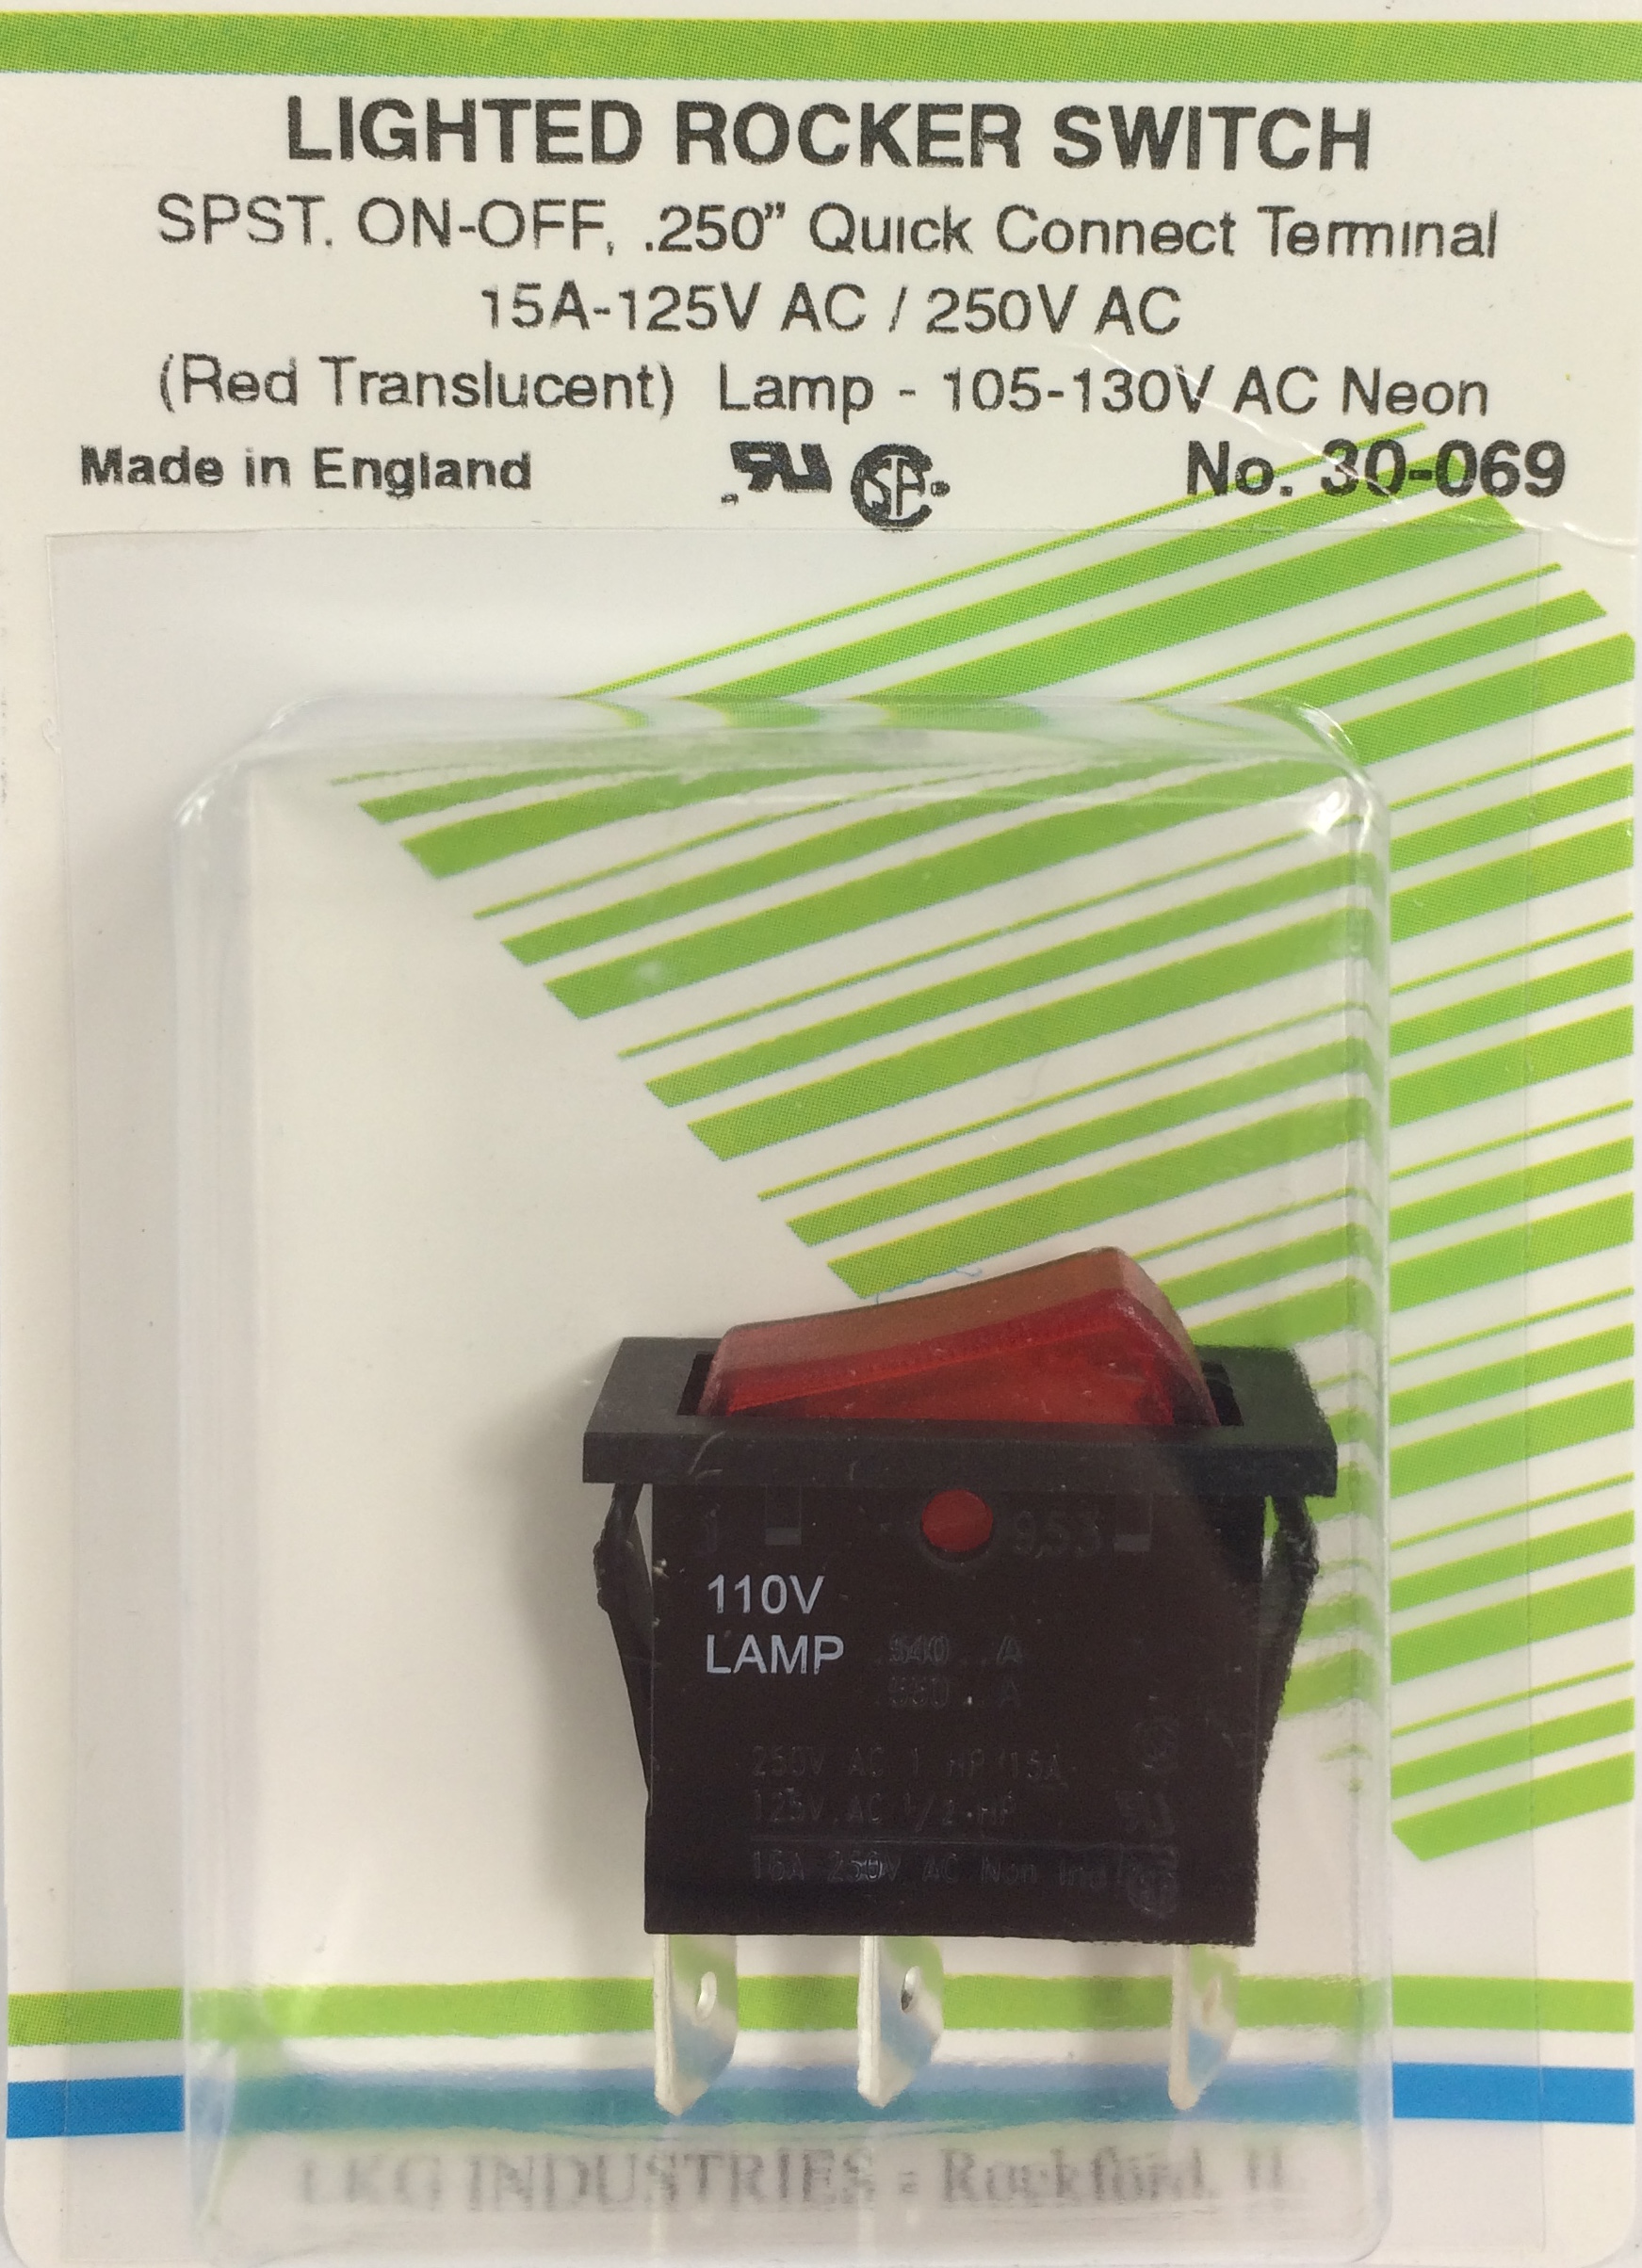 Orvac Electronics Standard Rocker Switch Mini Rockers Illuminated Non Switches Spst Lighted On Off Red Translucent Lens